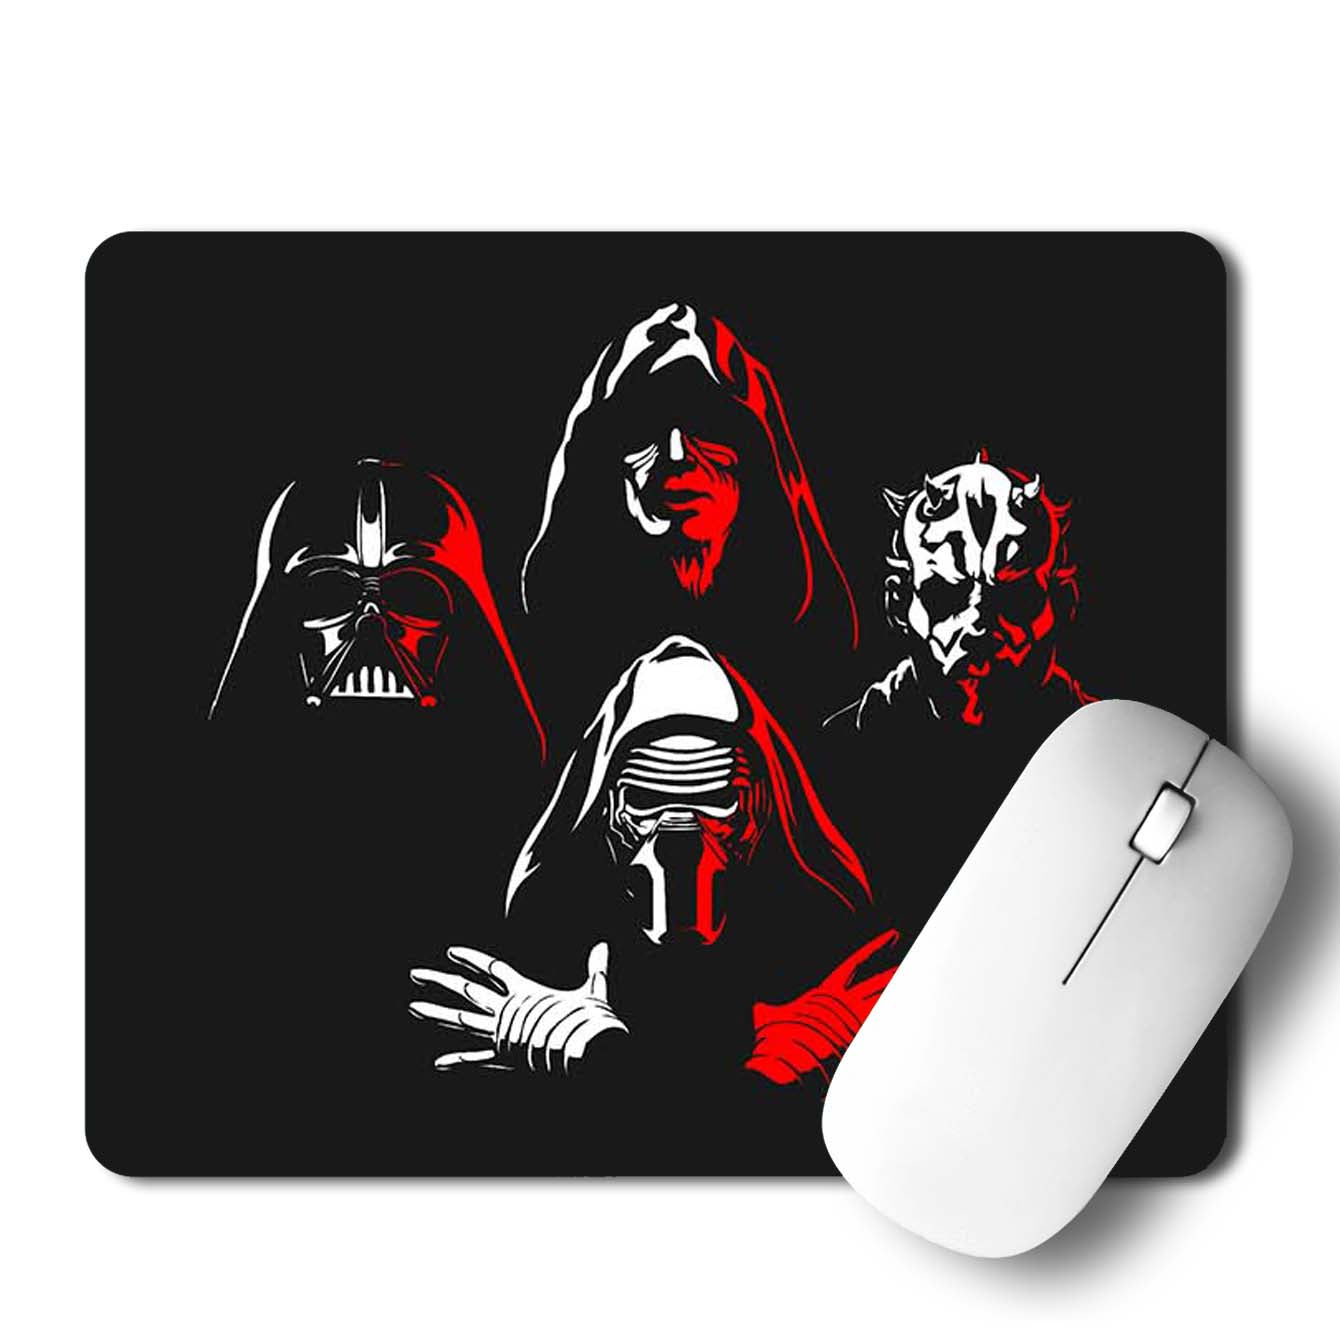 Buy Star Wars Movies Mouse Pads Online